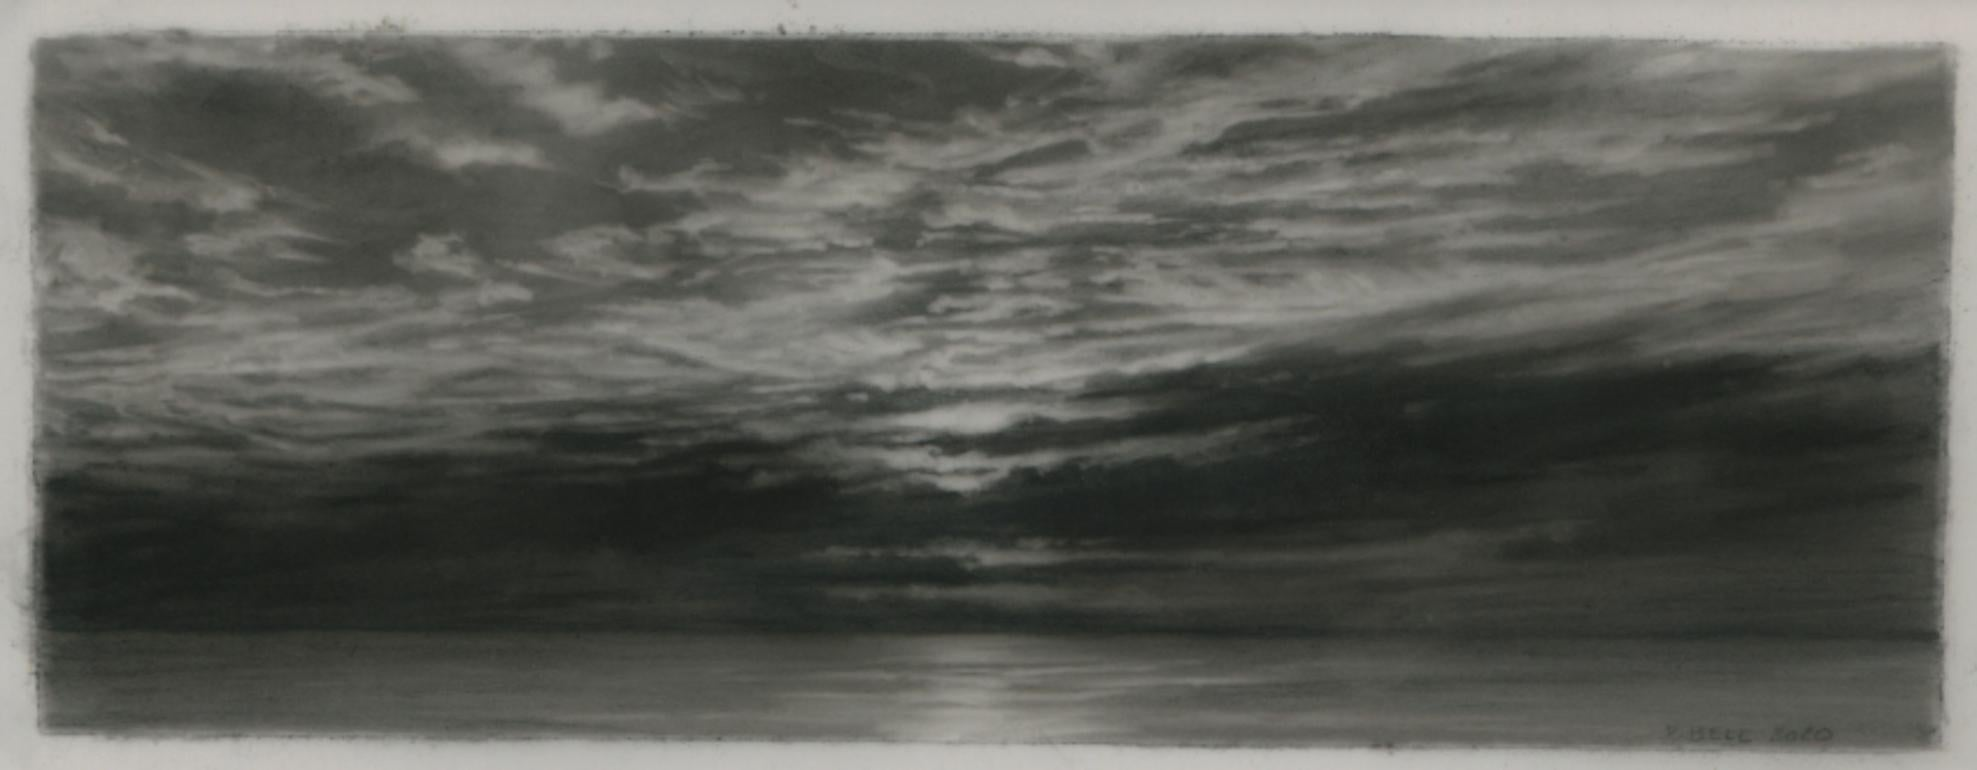 Sunset, Deadman Cove, realist black and white charcoal skyscape drawing